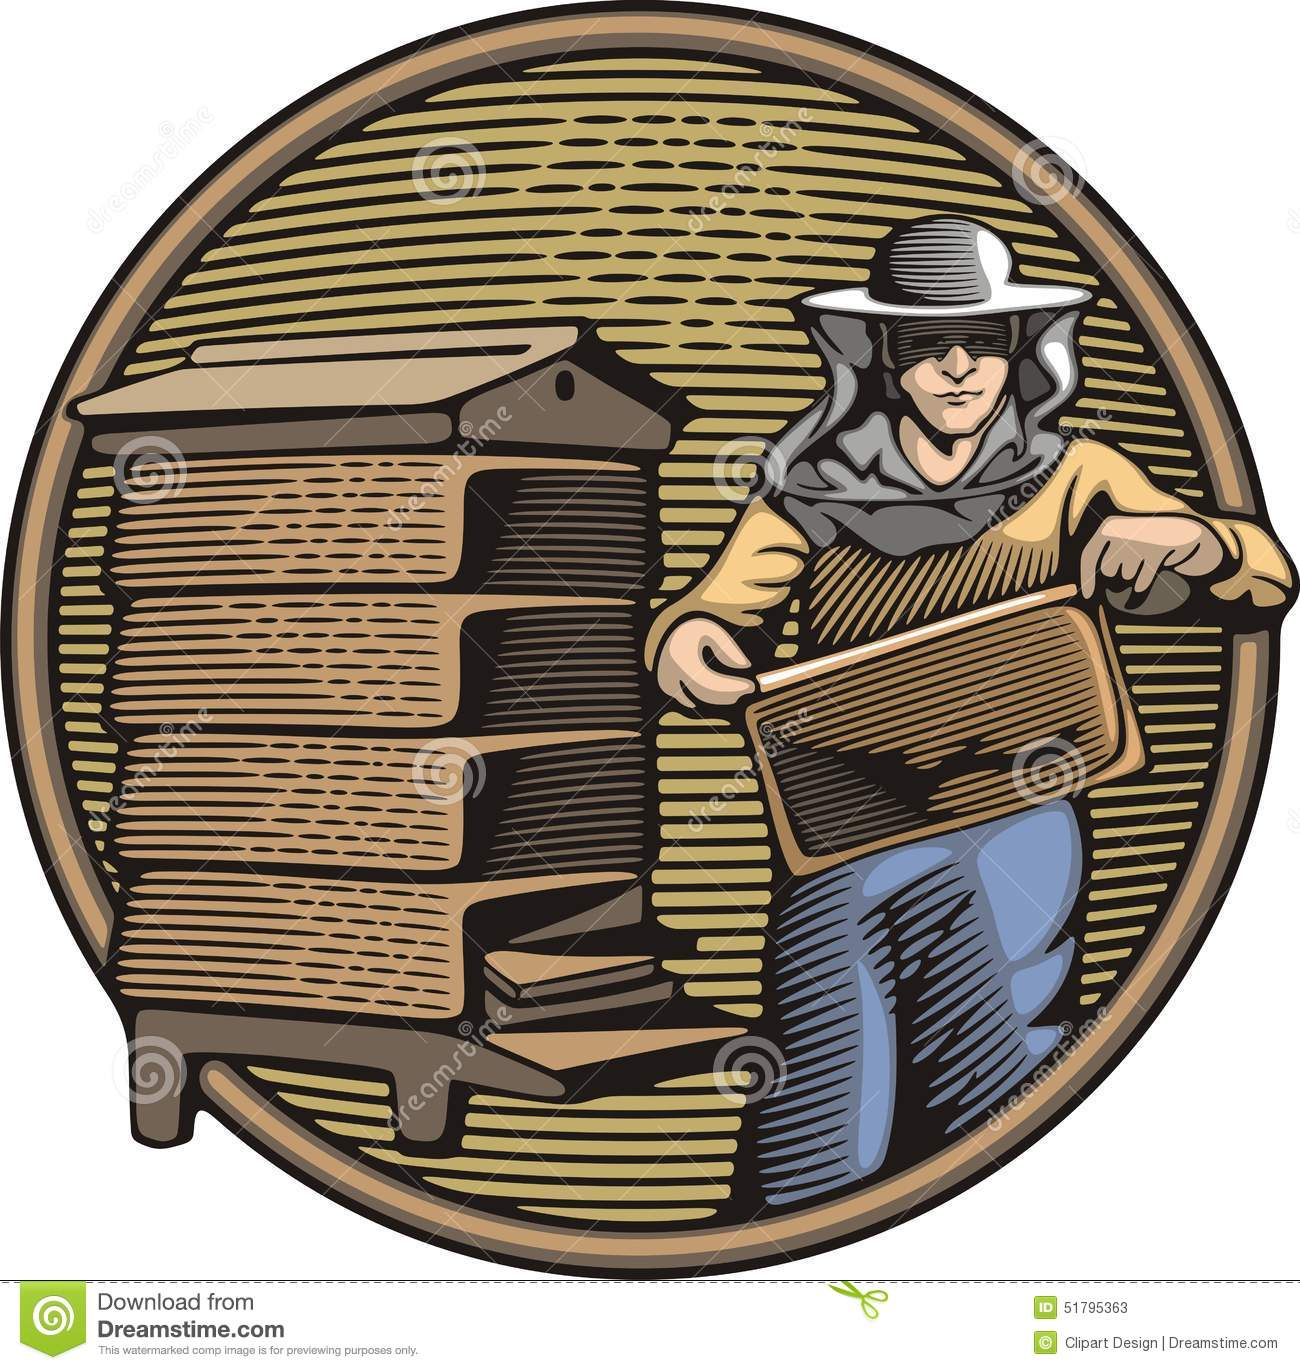 Download Beekeeper Vector Illustration In Woodcut Style Stock Vector - Illustration of agriculture, safety: 51795363